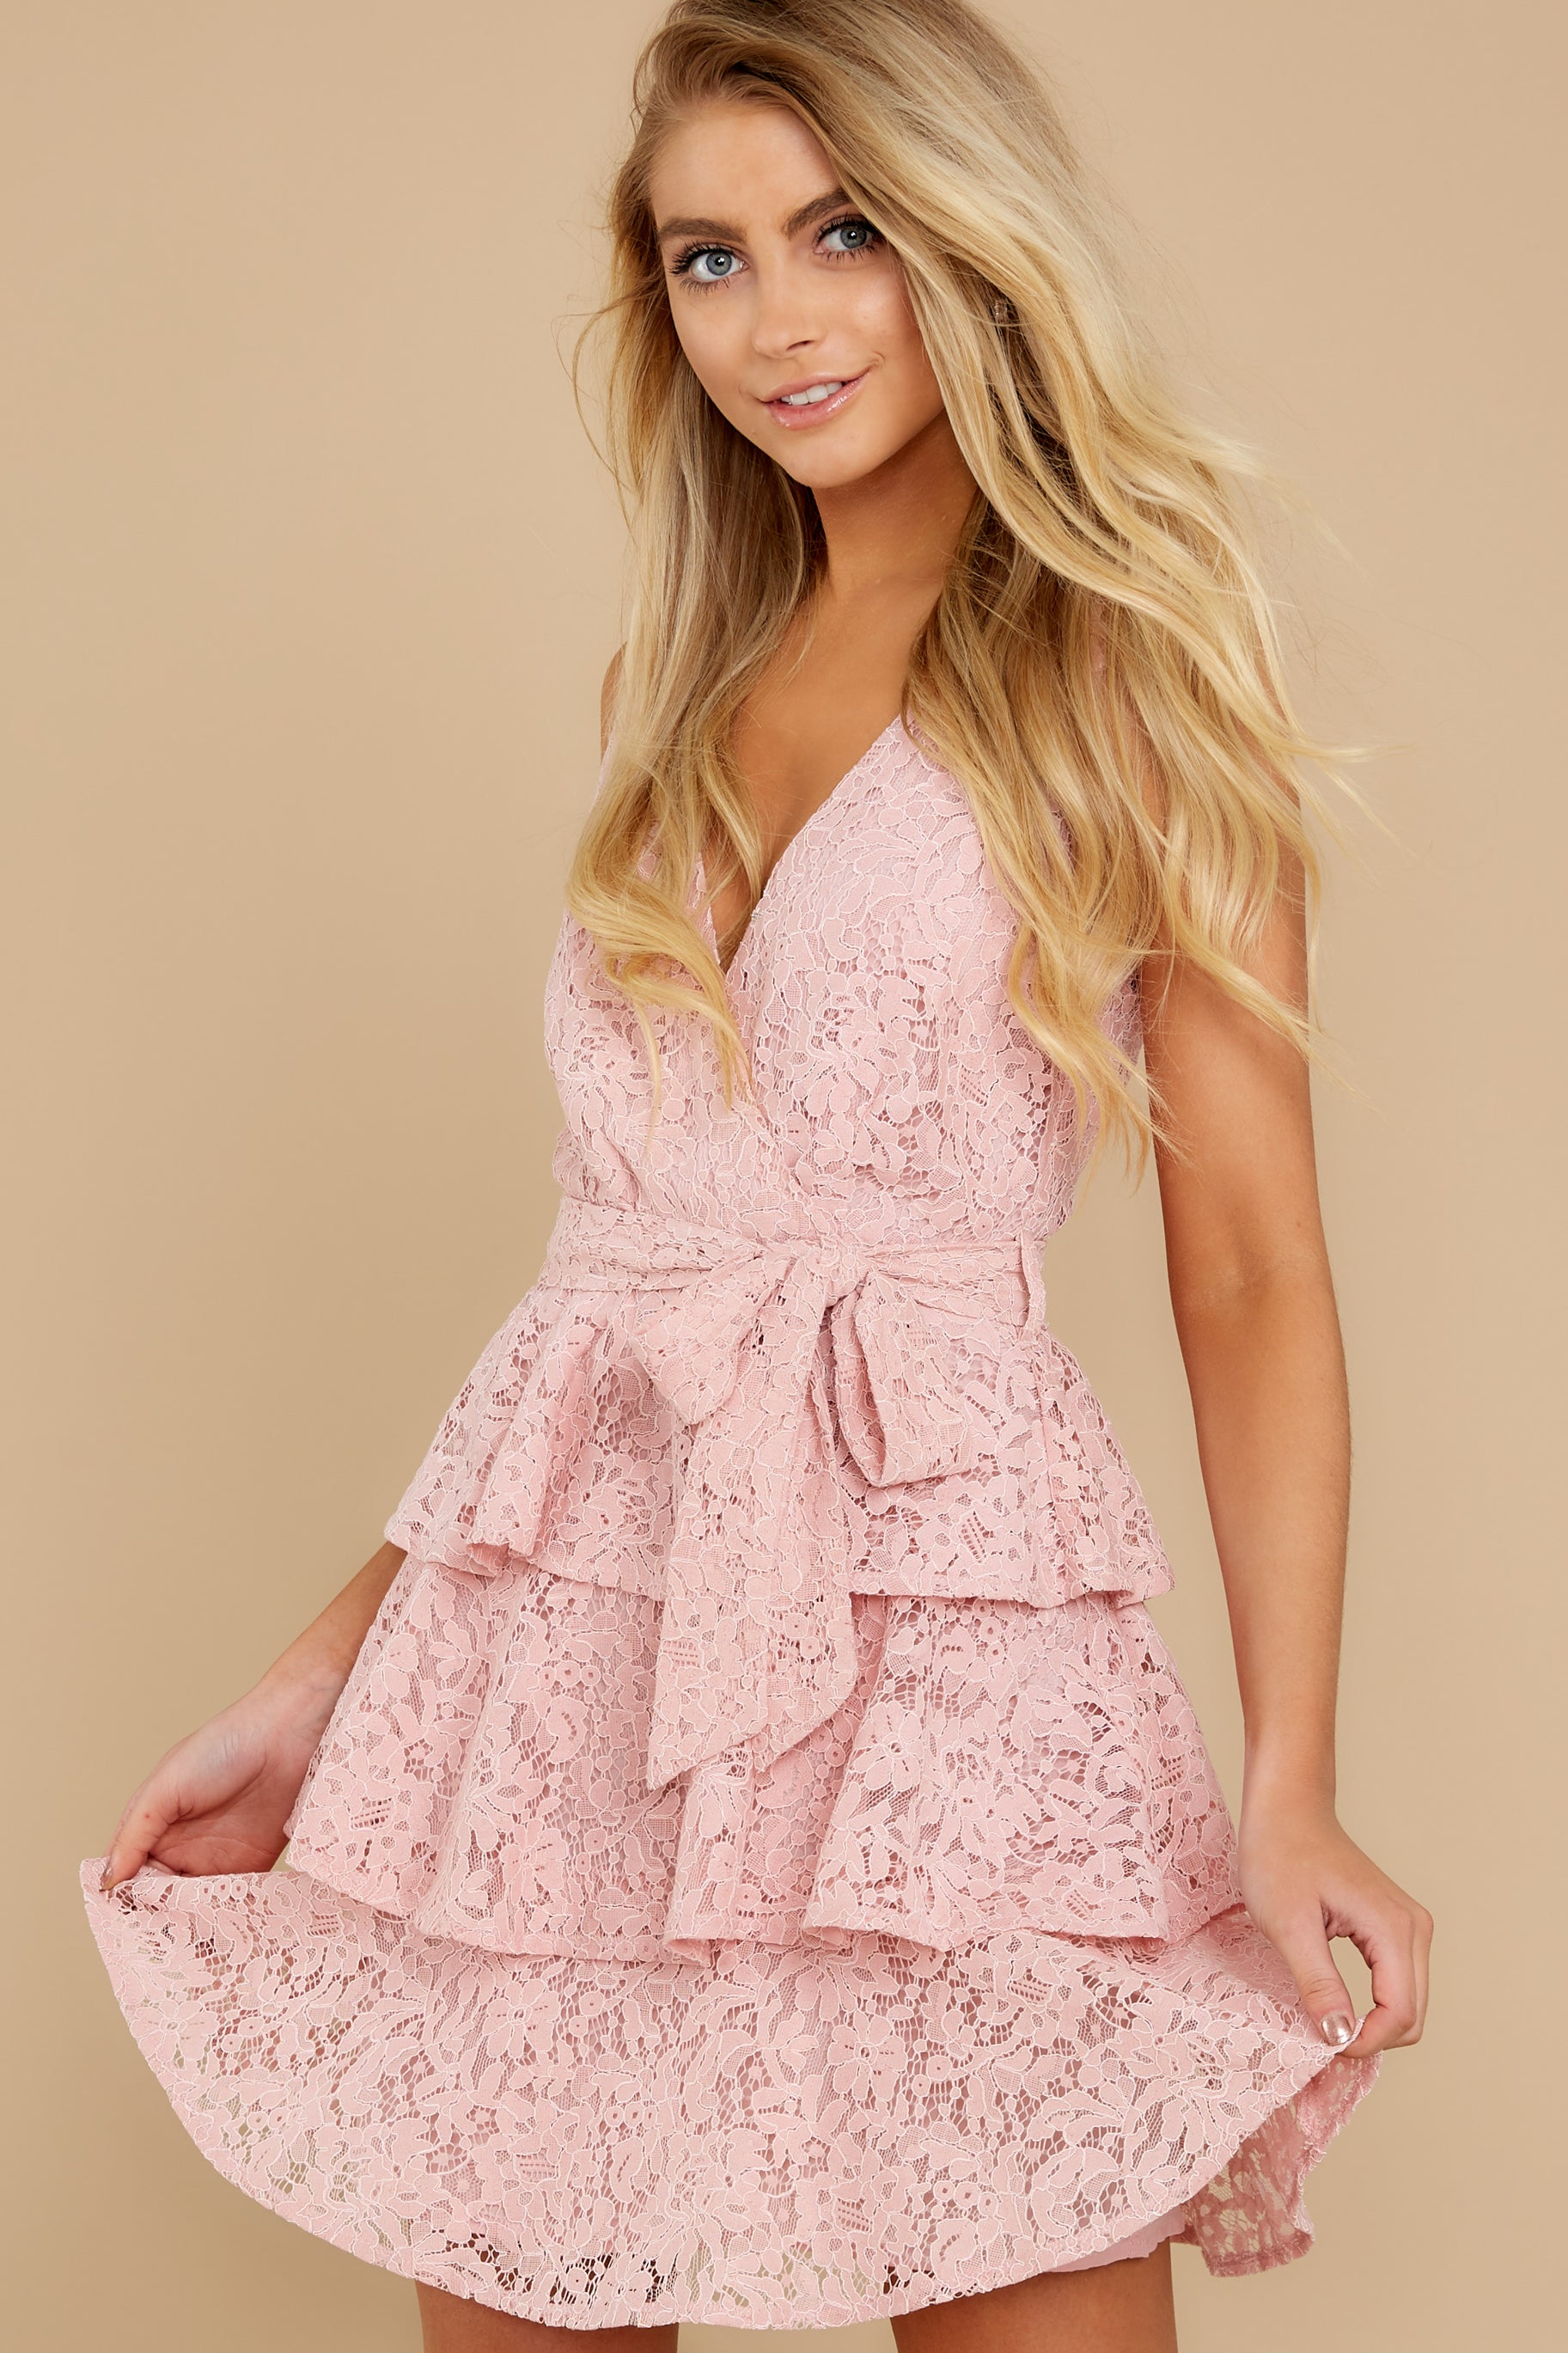 6 Take My Hand Light Pink Lace Dress at reddress.com